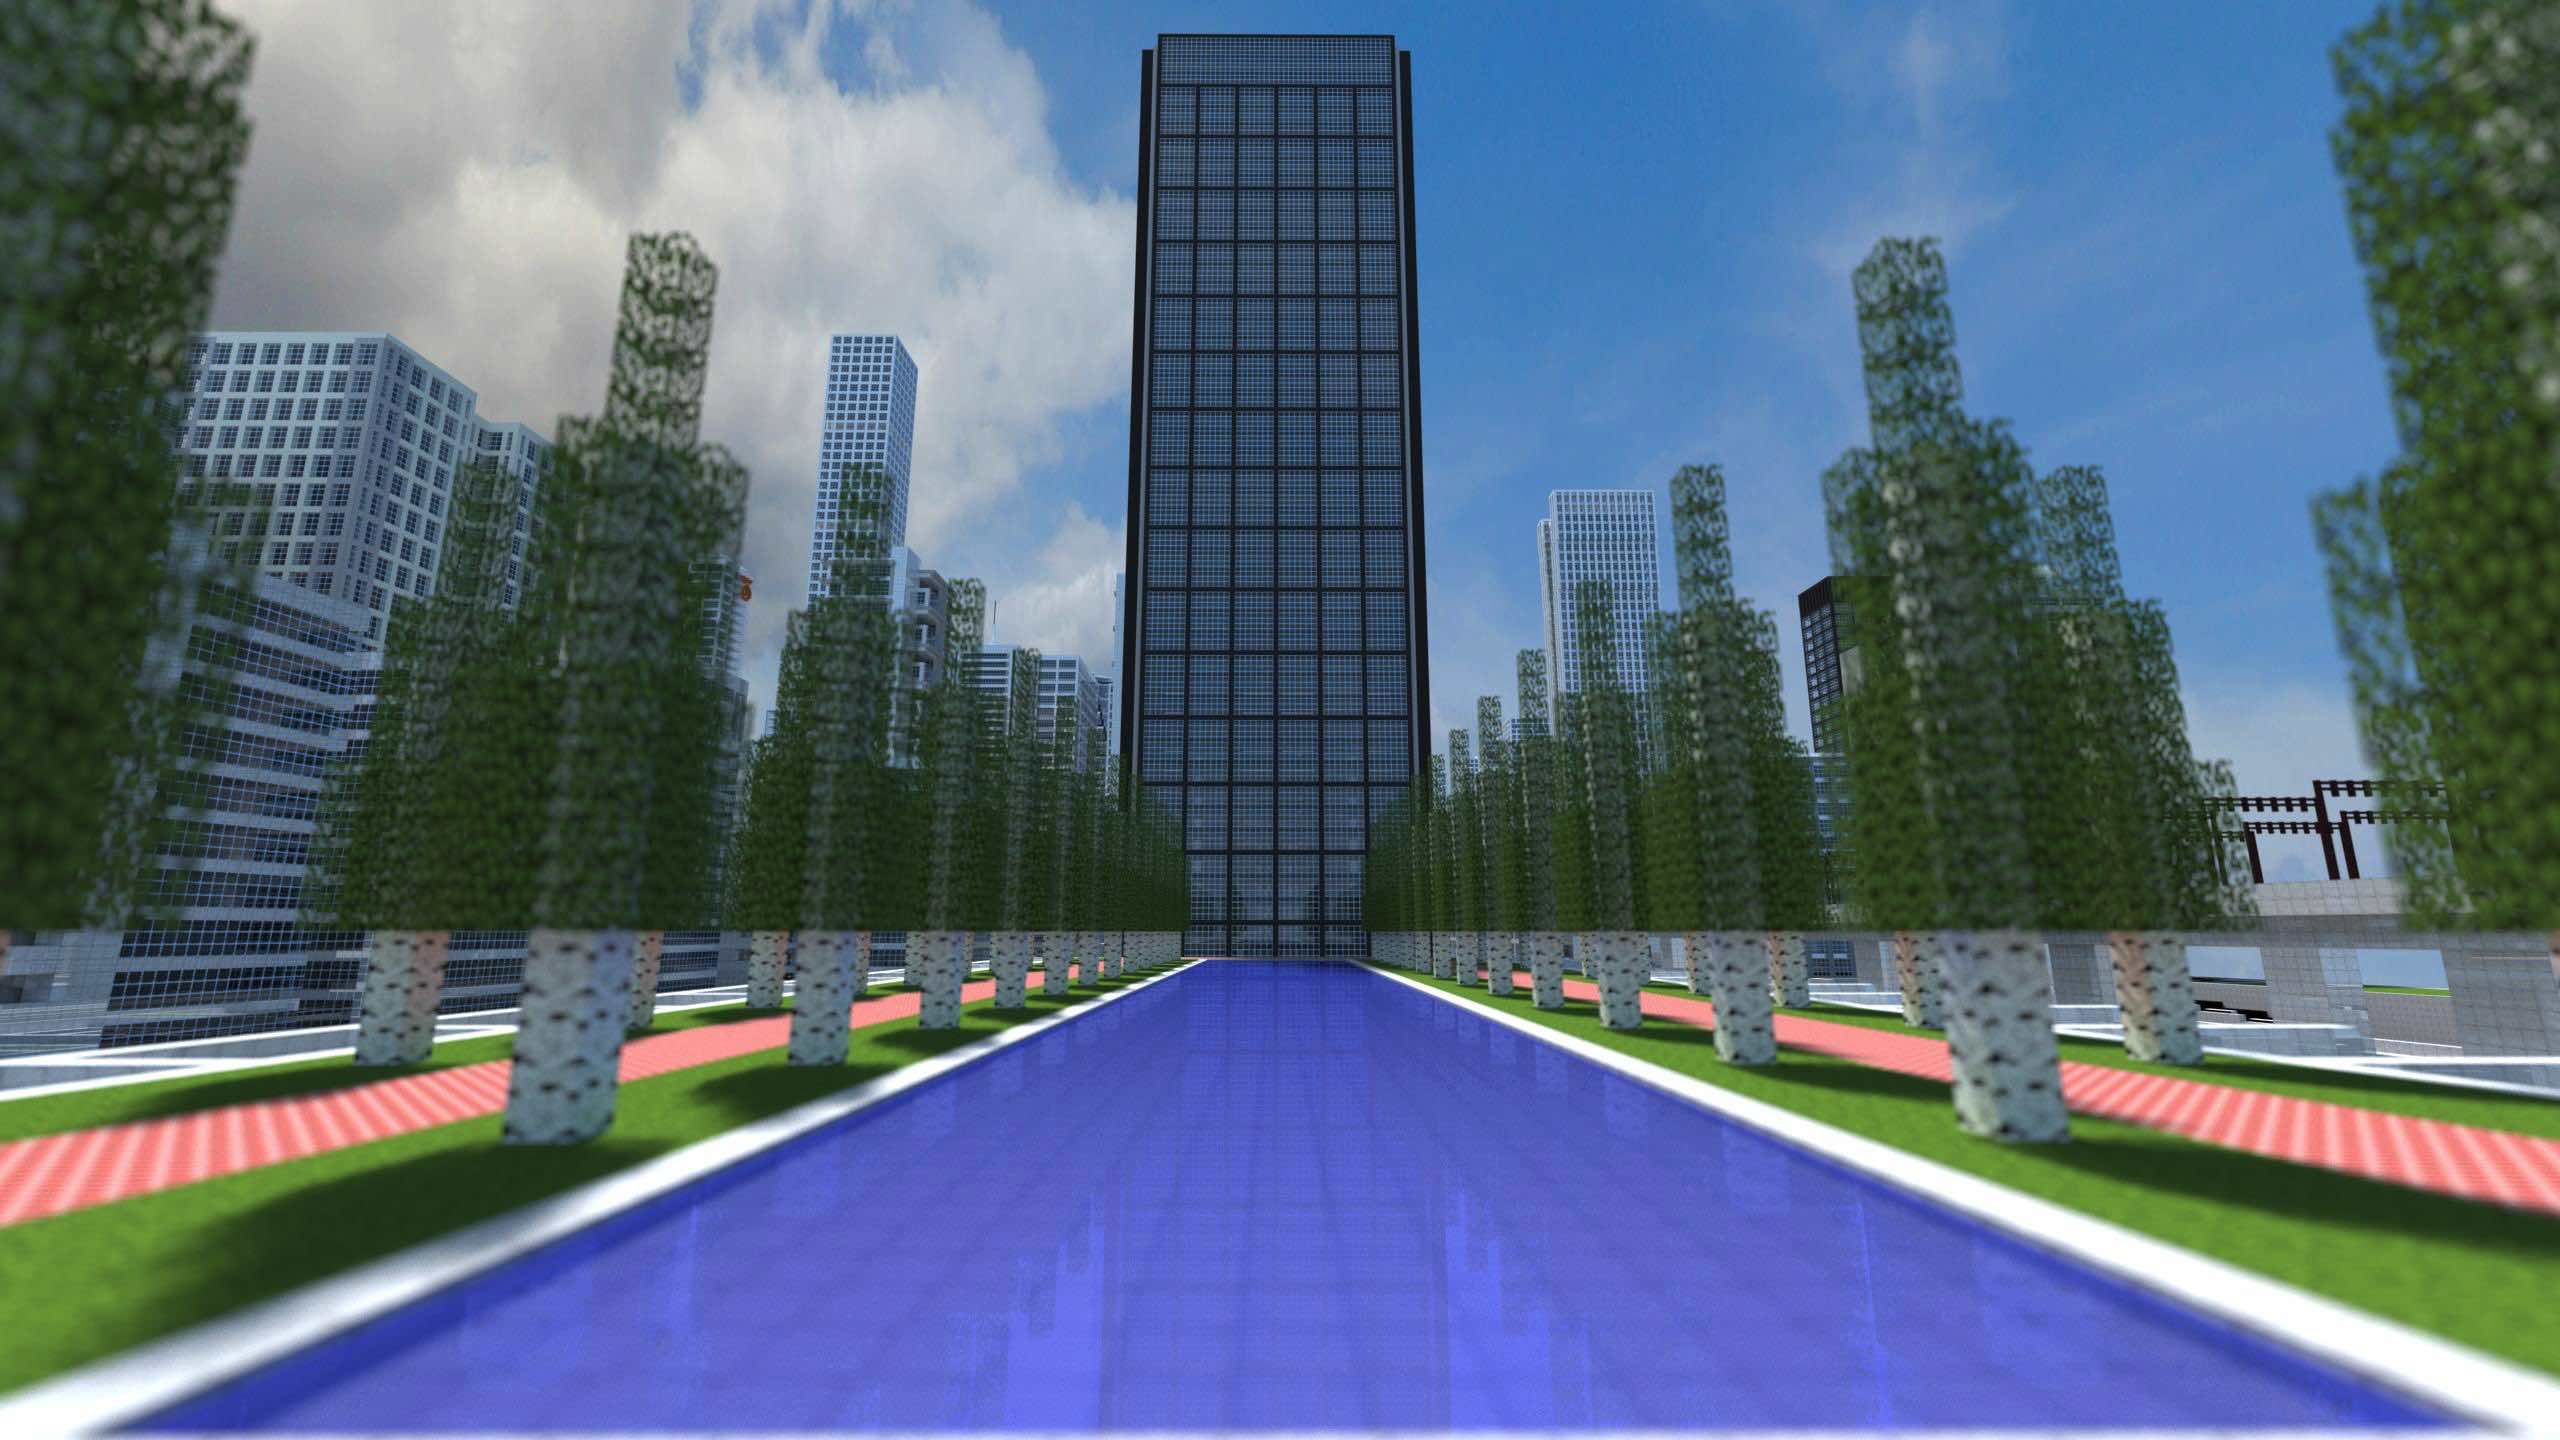 minecraft-city-plaza